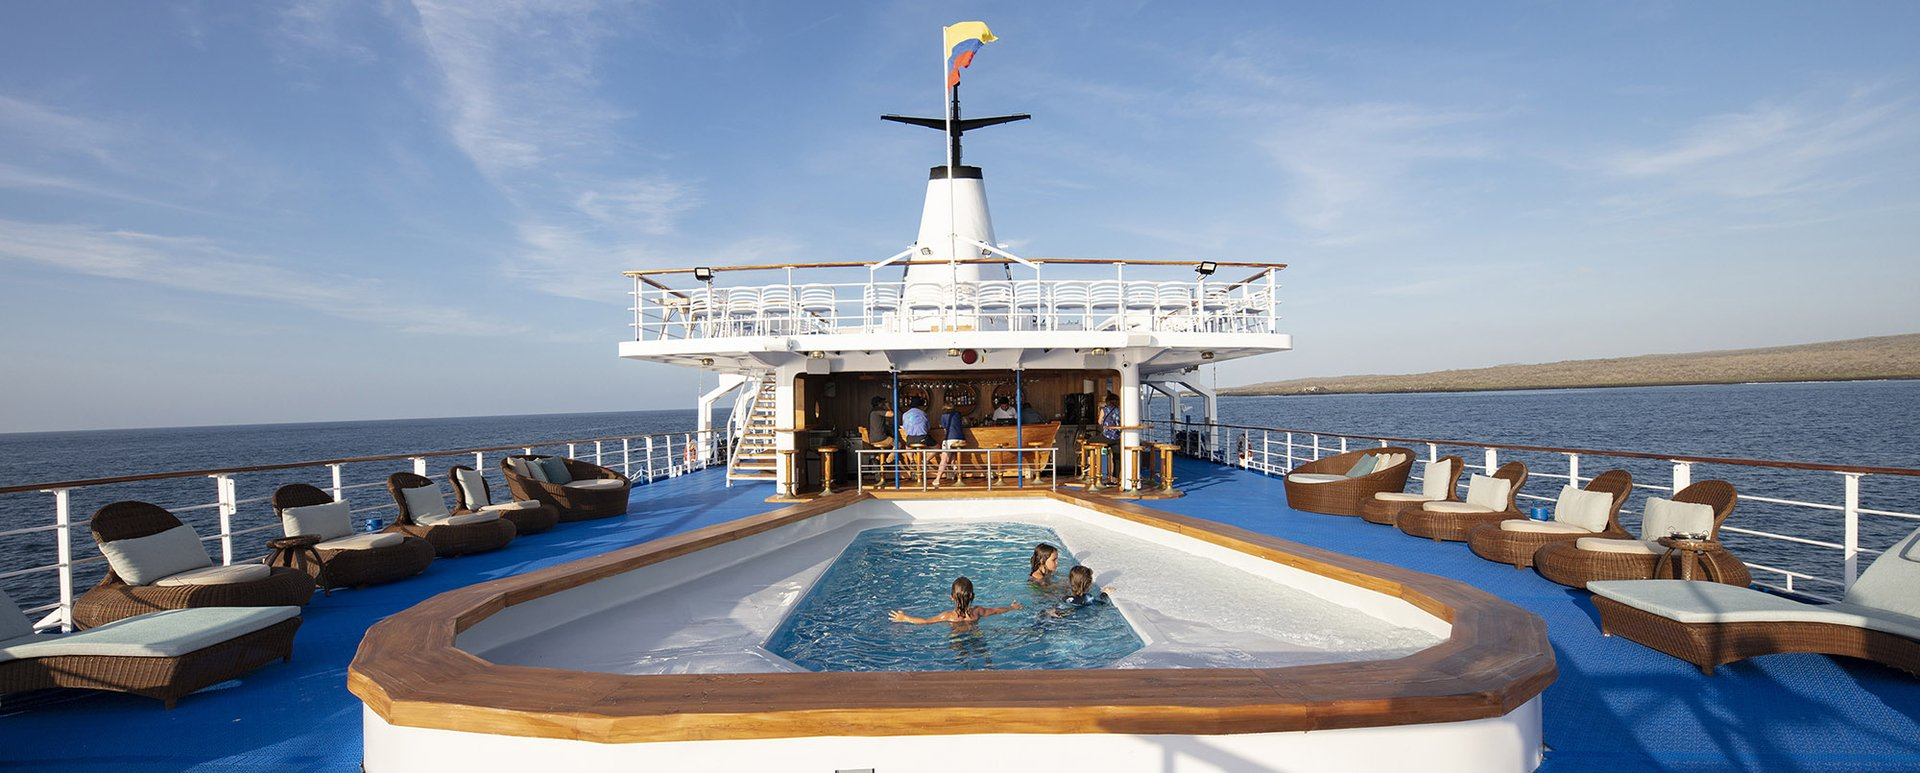 Galapagos Legend Cruise pool